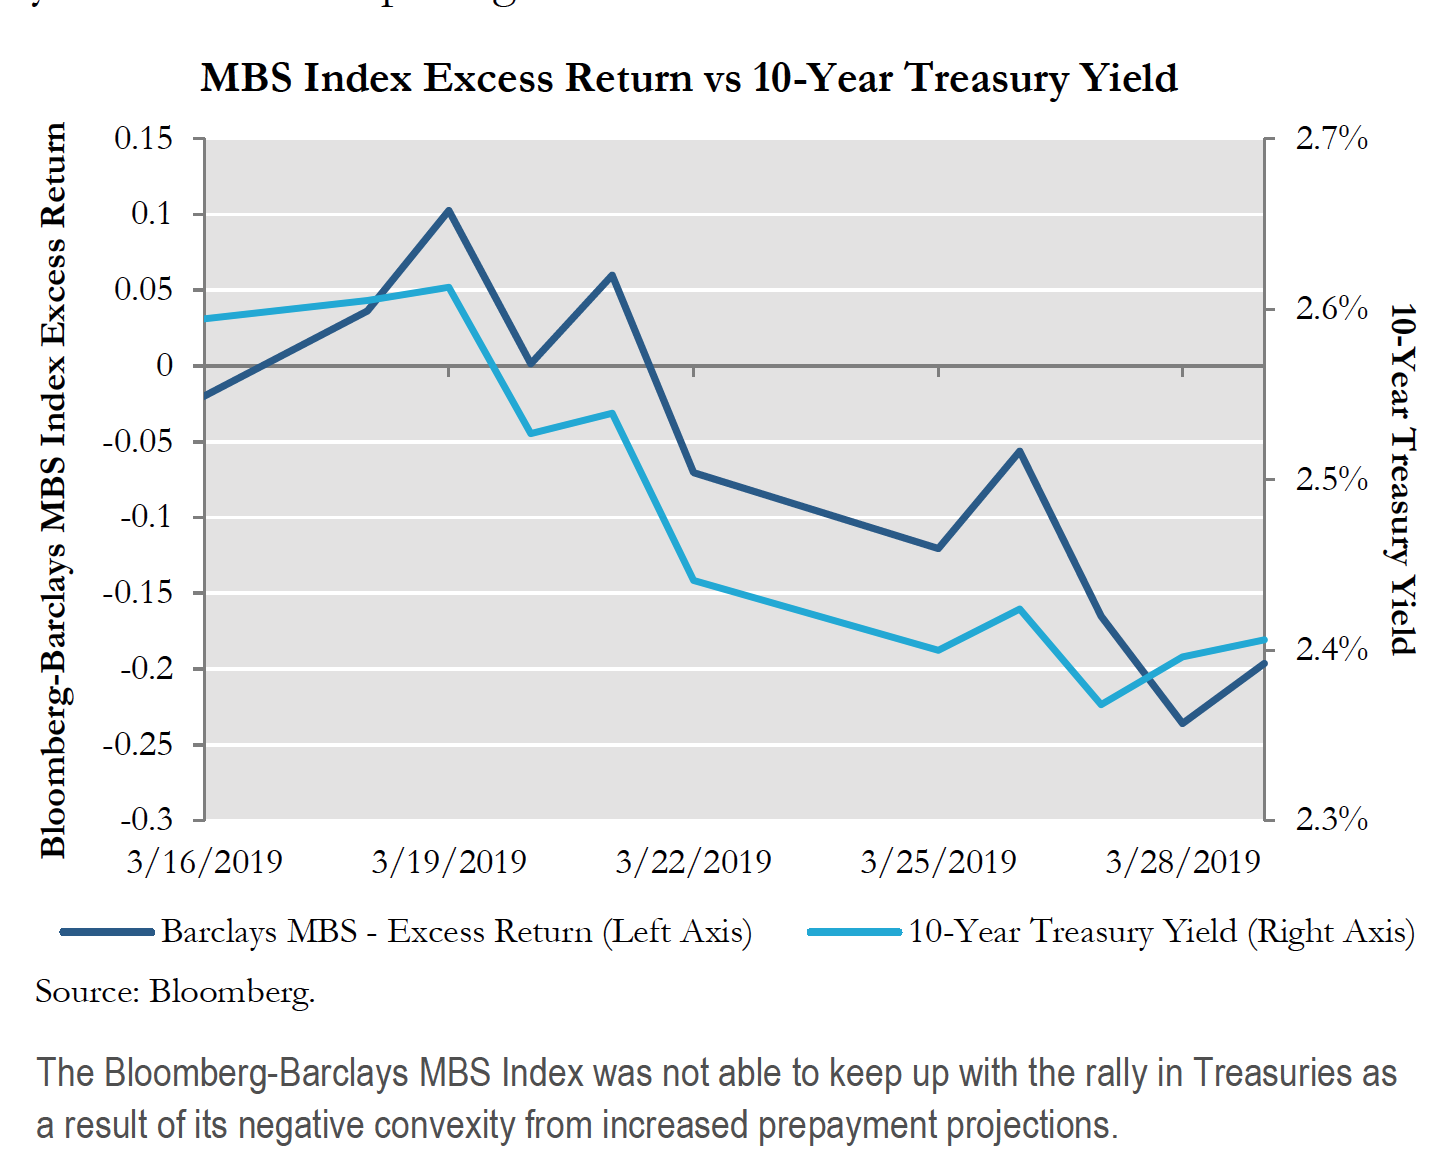 MBS Index Excess Return vs 10 Year Treasury Yield